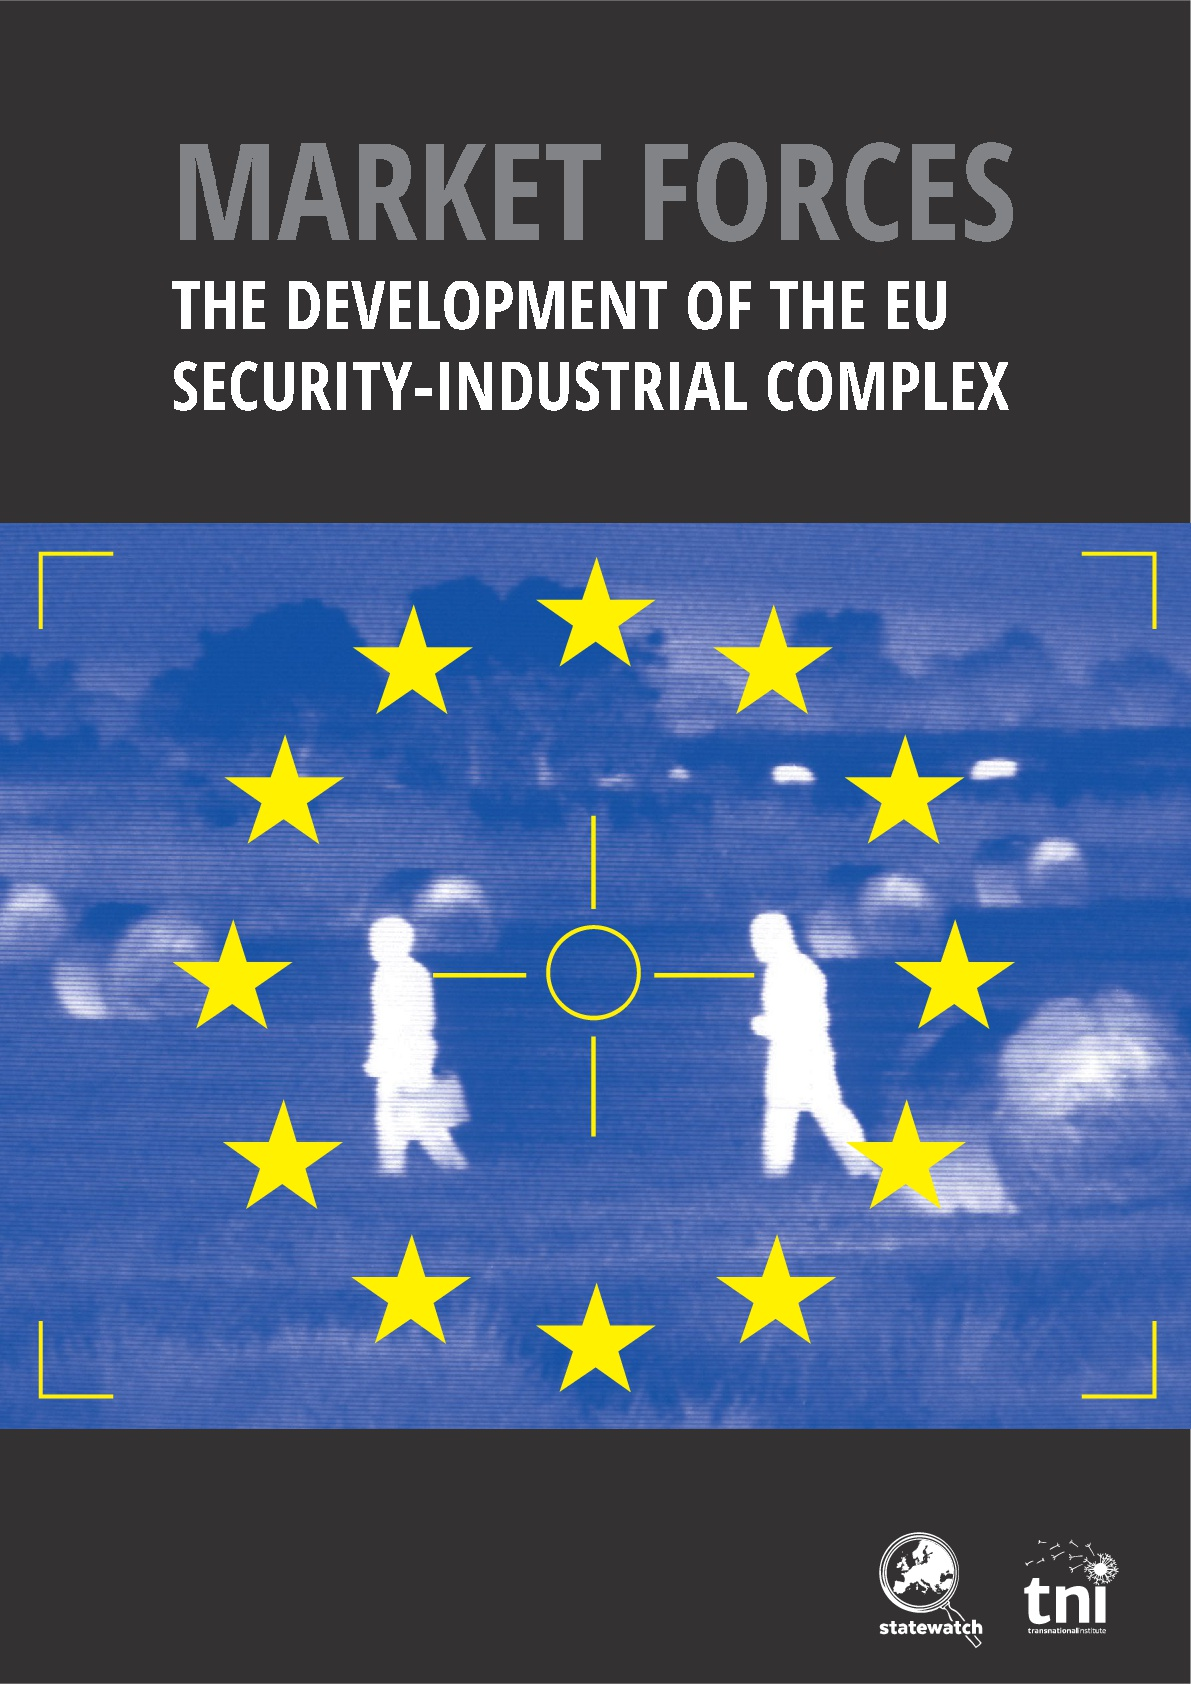 Market Forces: The development of the EU Security-Industrial Complex